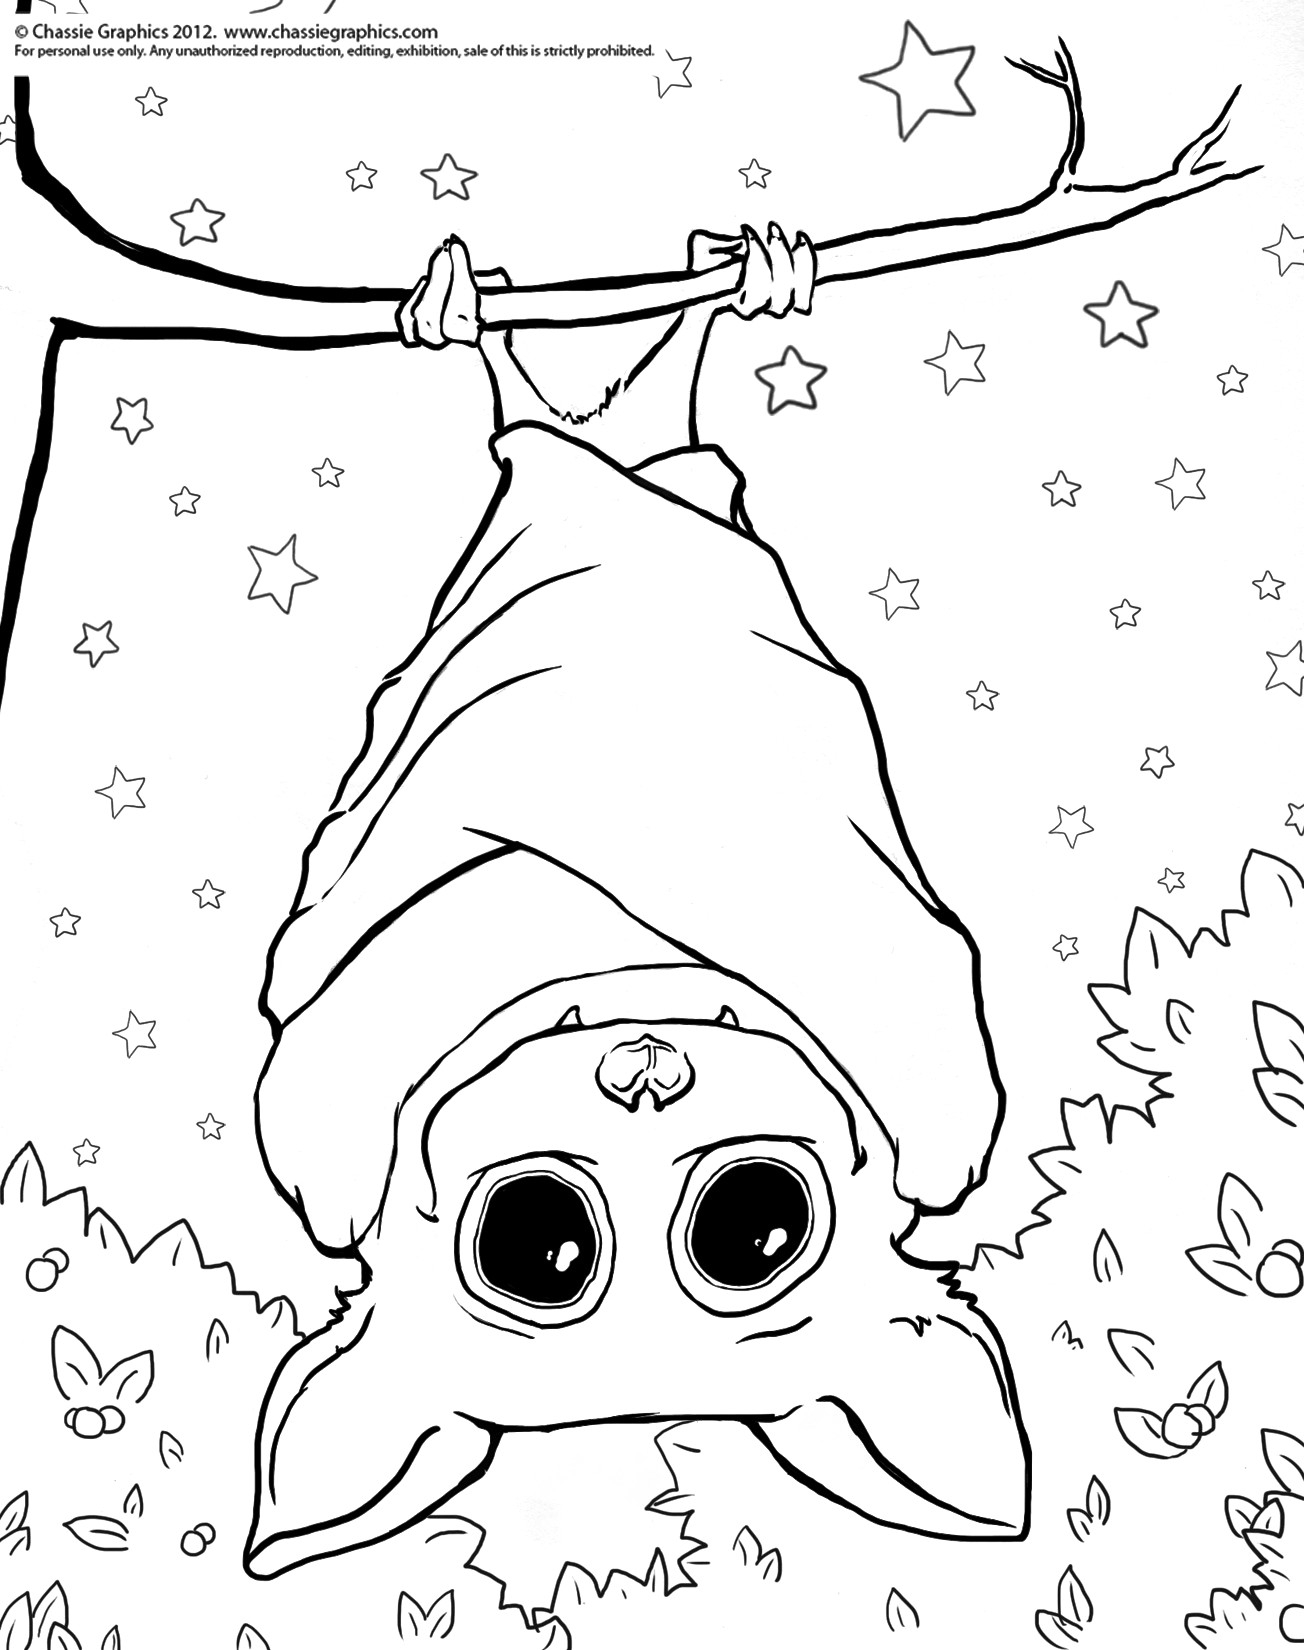 Bat Coloring Pages Coloring Page Bat Free Draw To Color For Bats Pages Cute Birijus Com